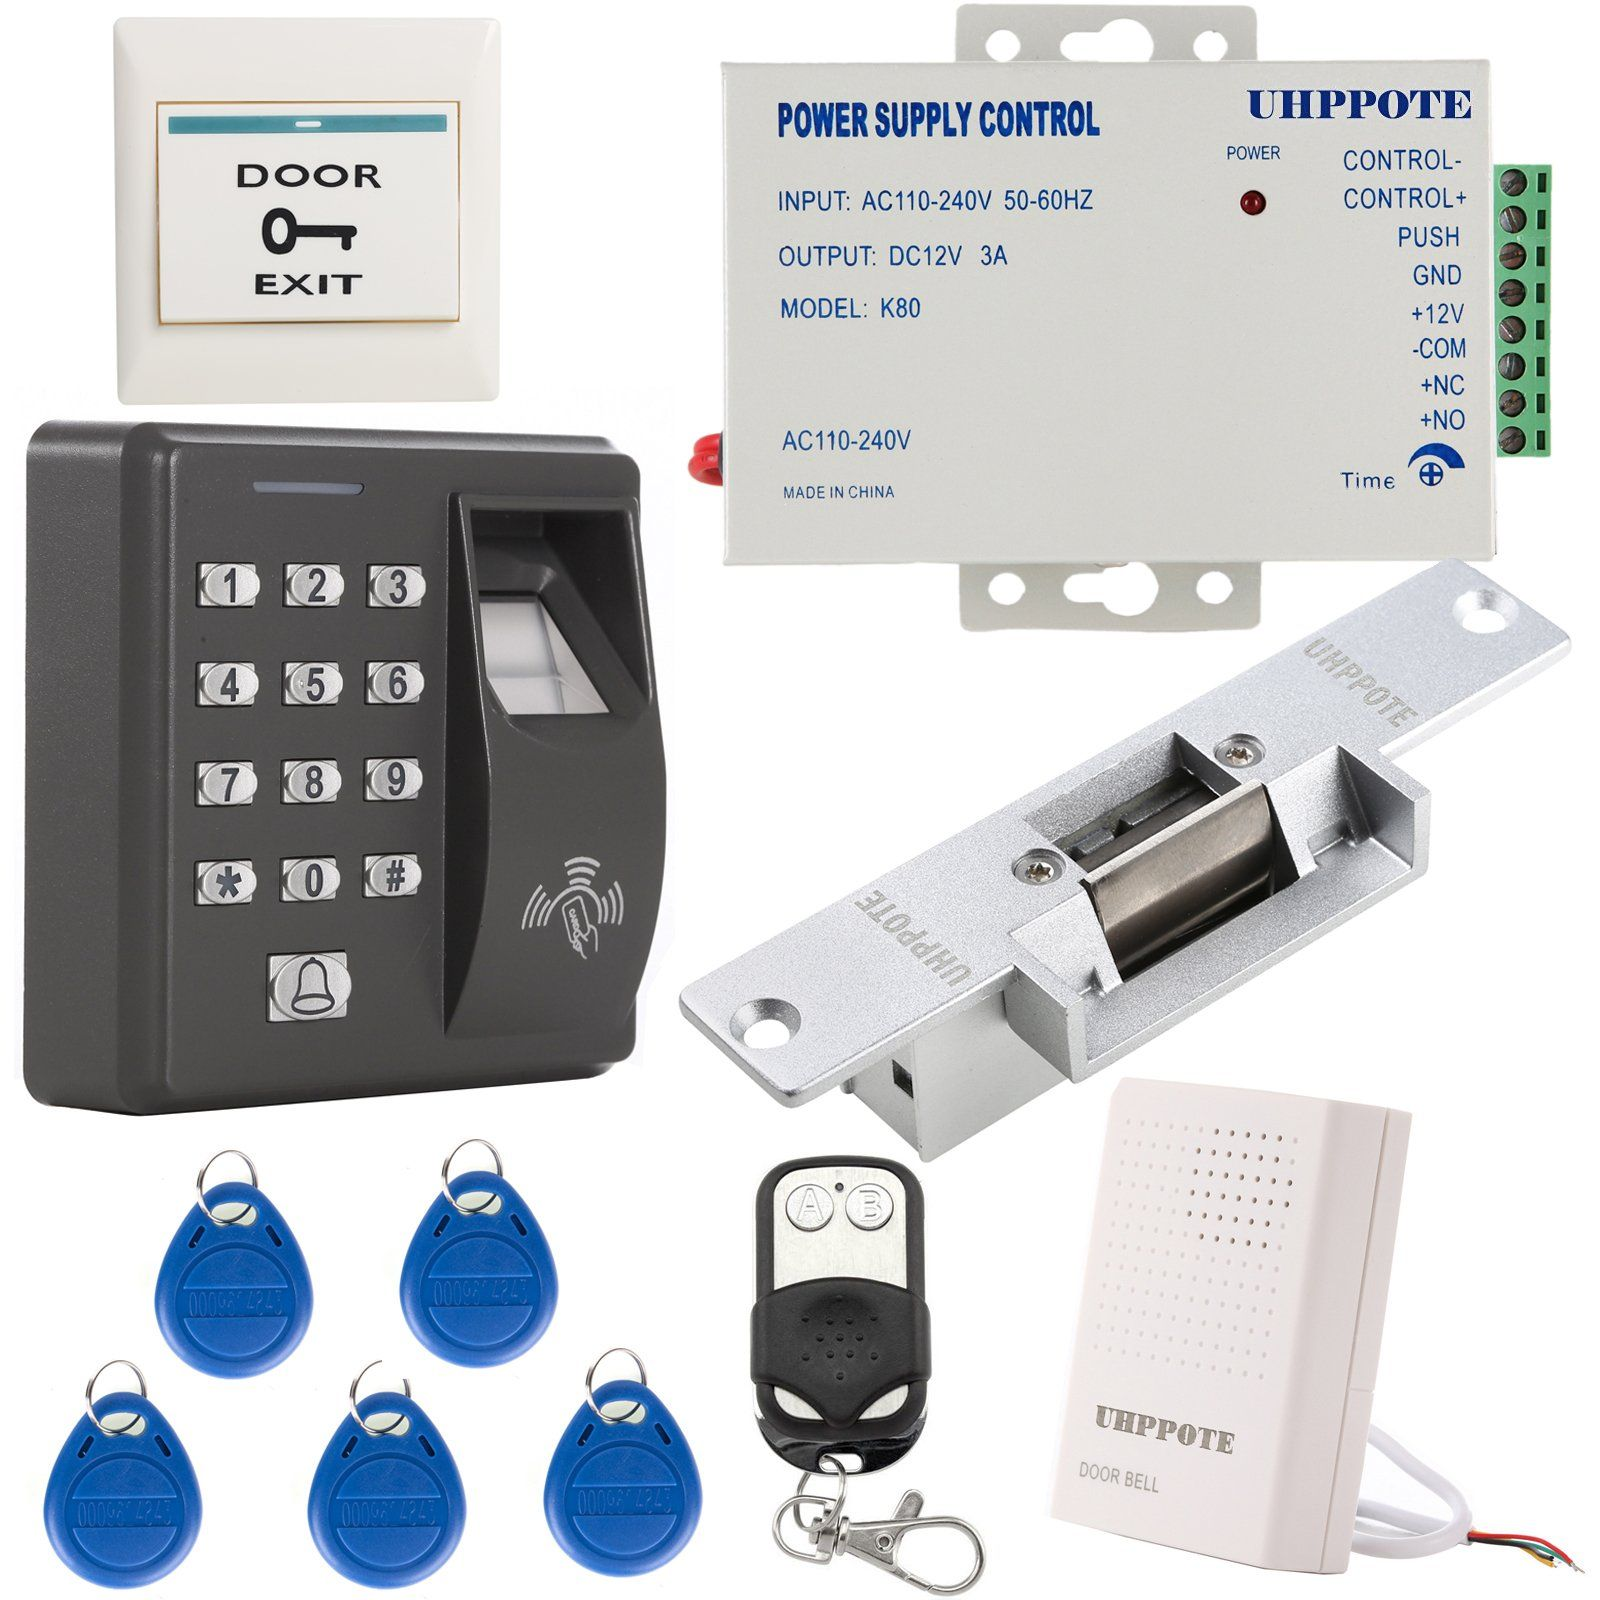 c6ee0e2939b6fdb6d73b5246b98f620f uhppote fingerprint rfid em id card access control system kit with